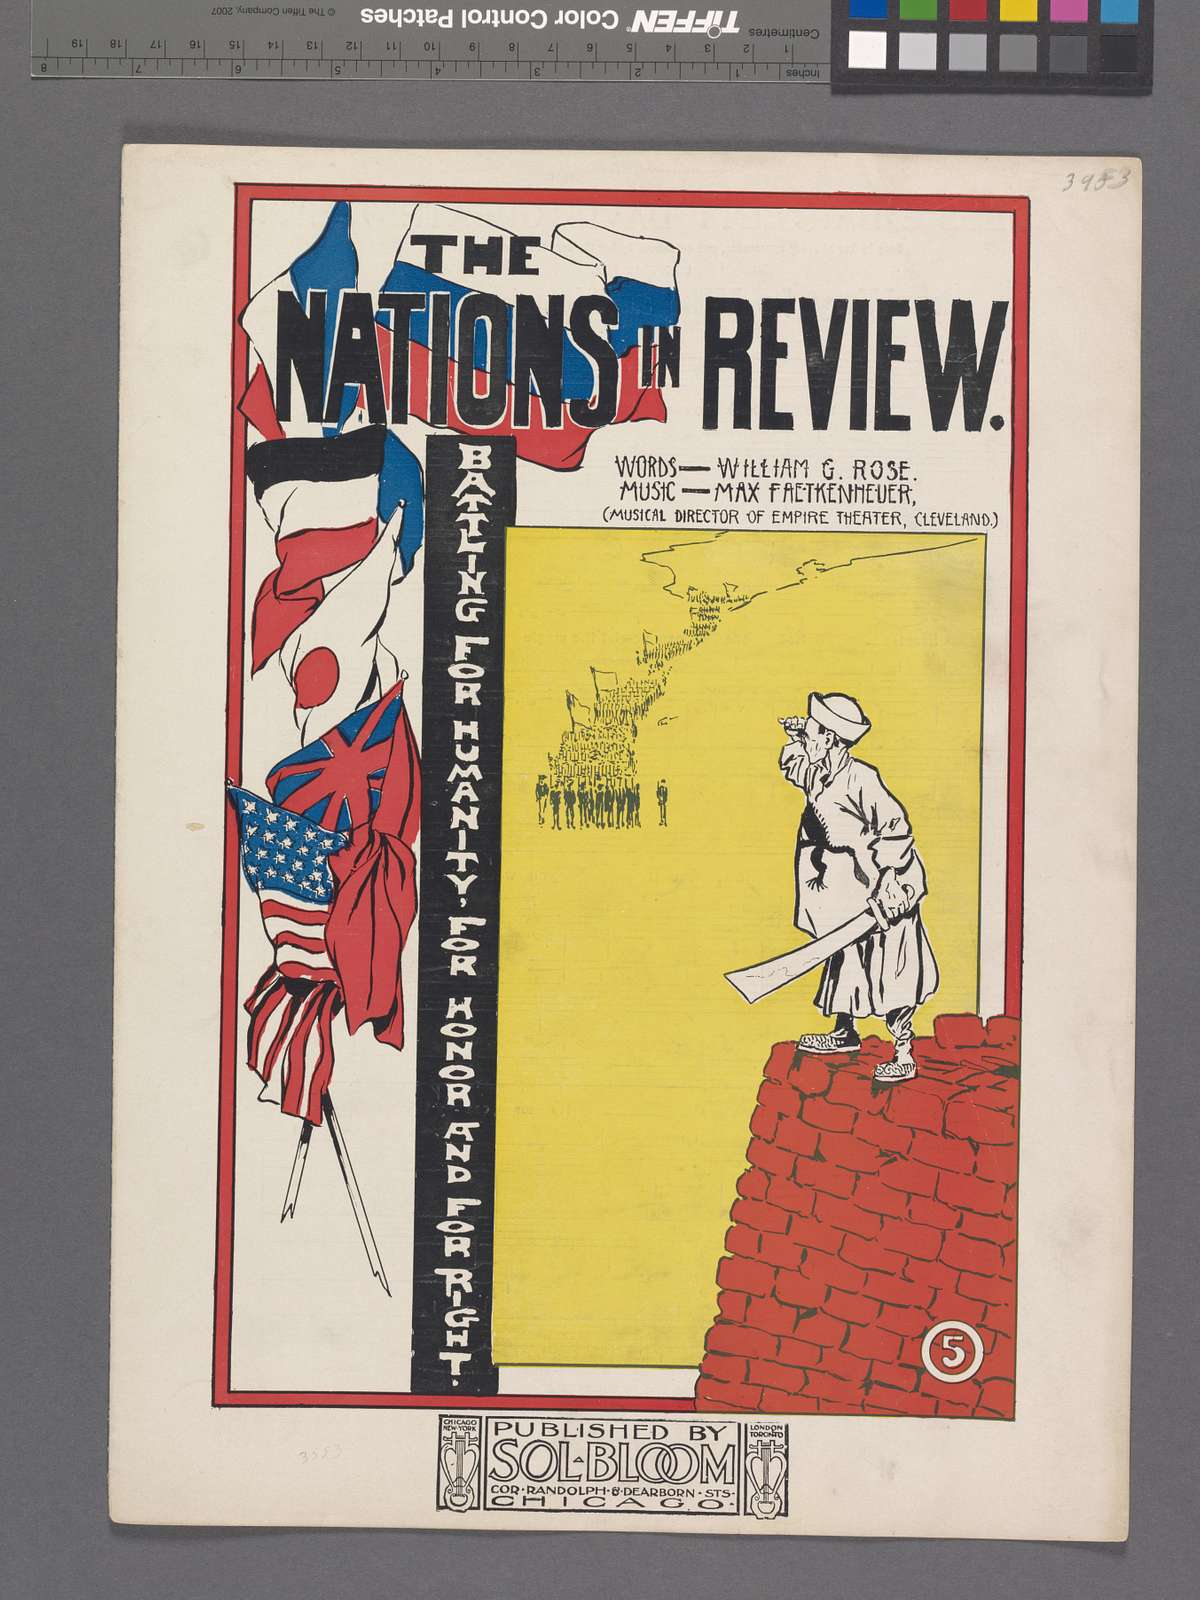 The nations in review